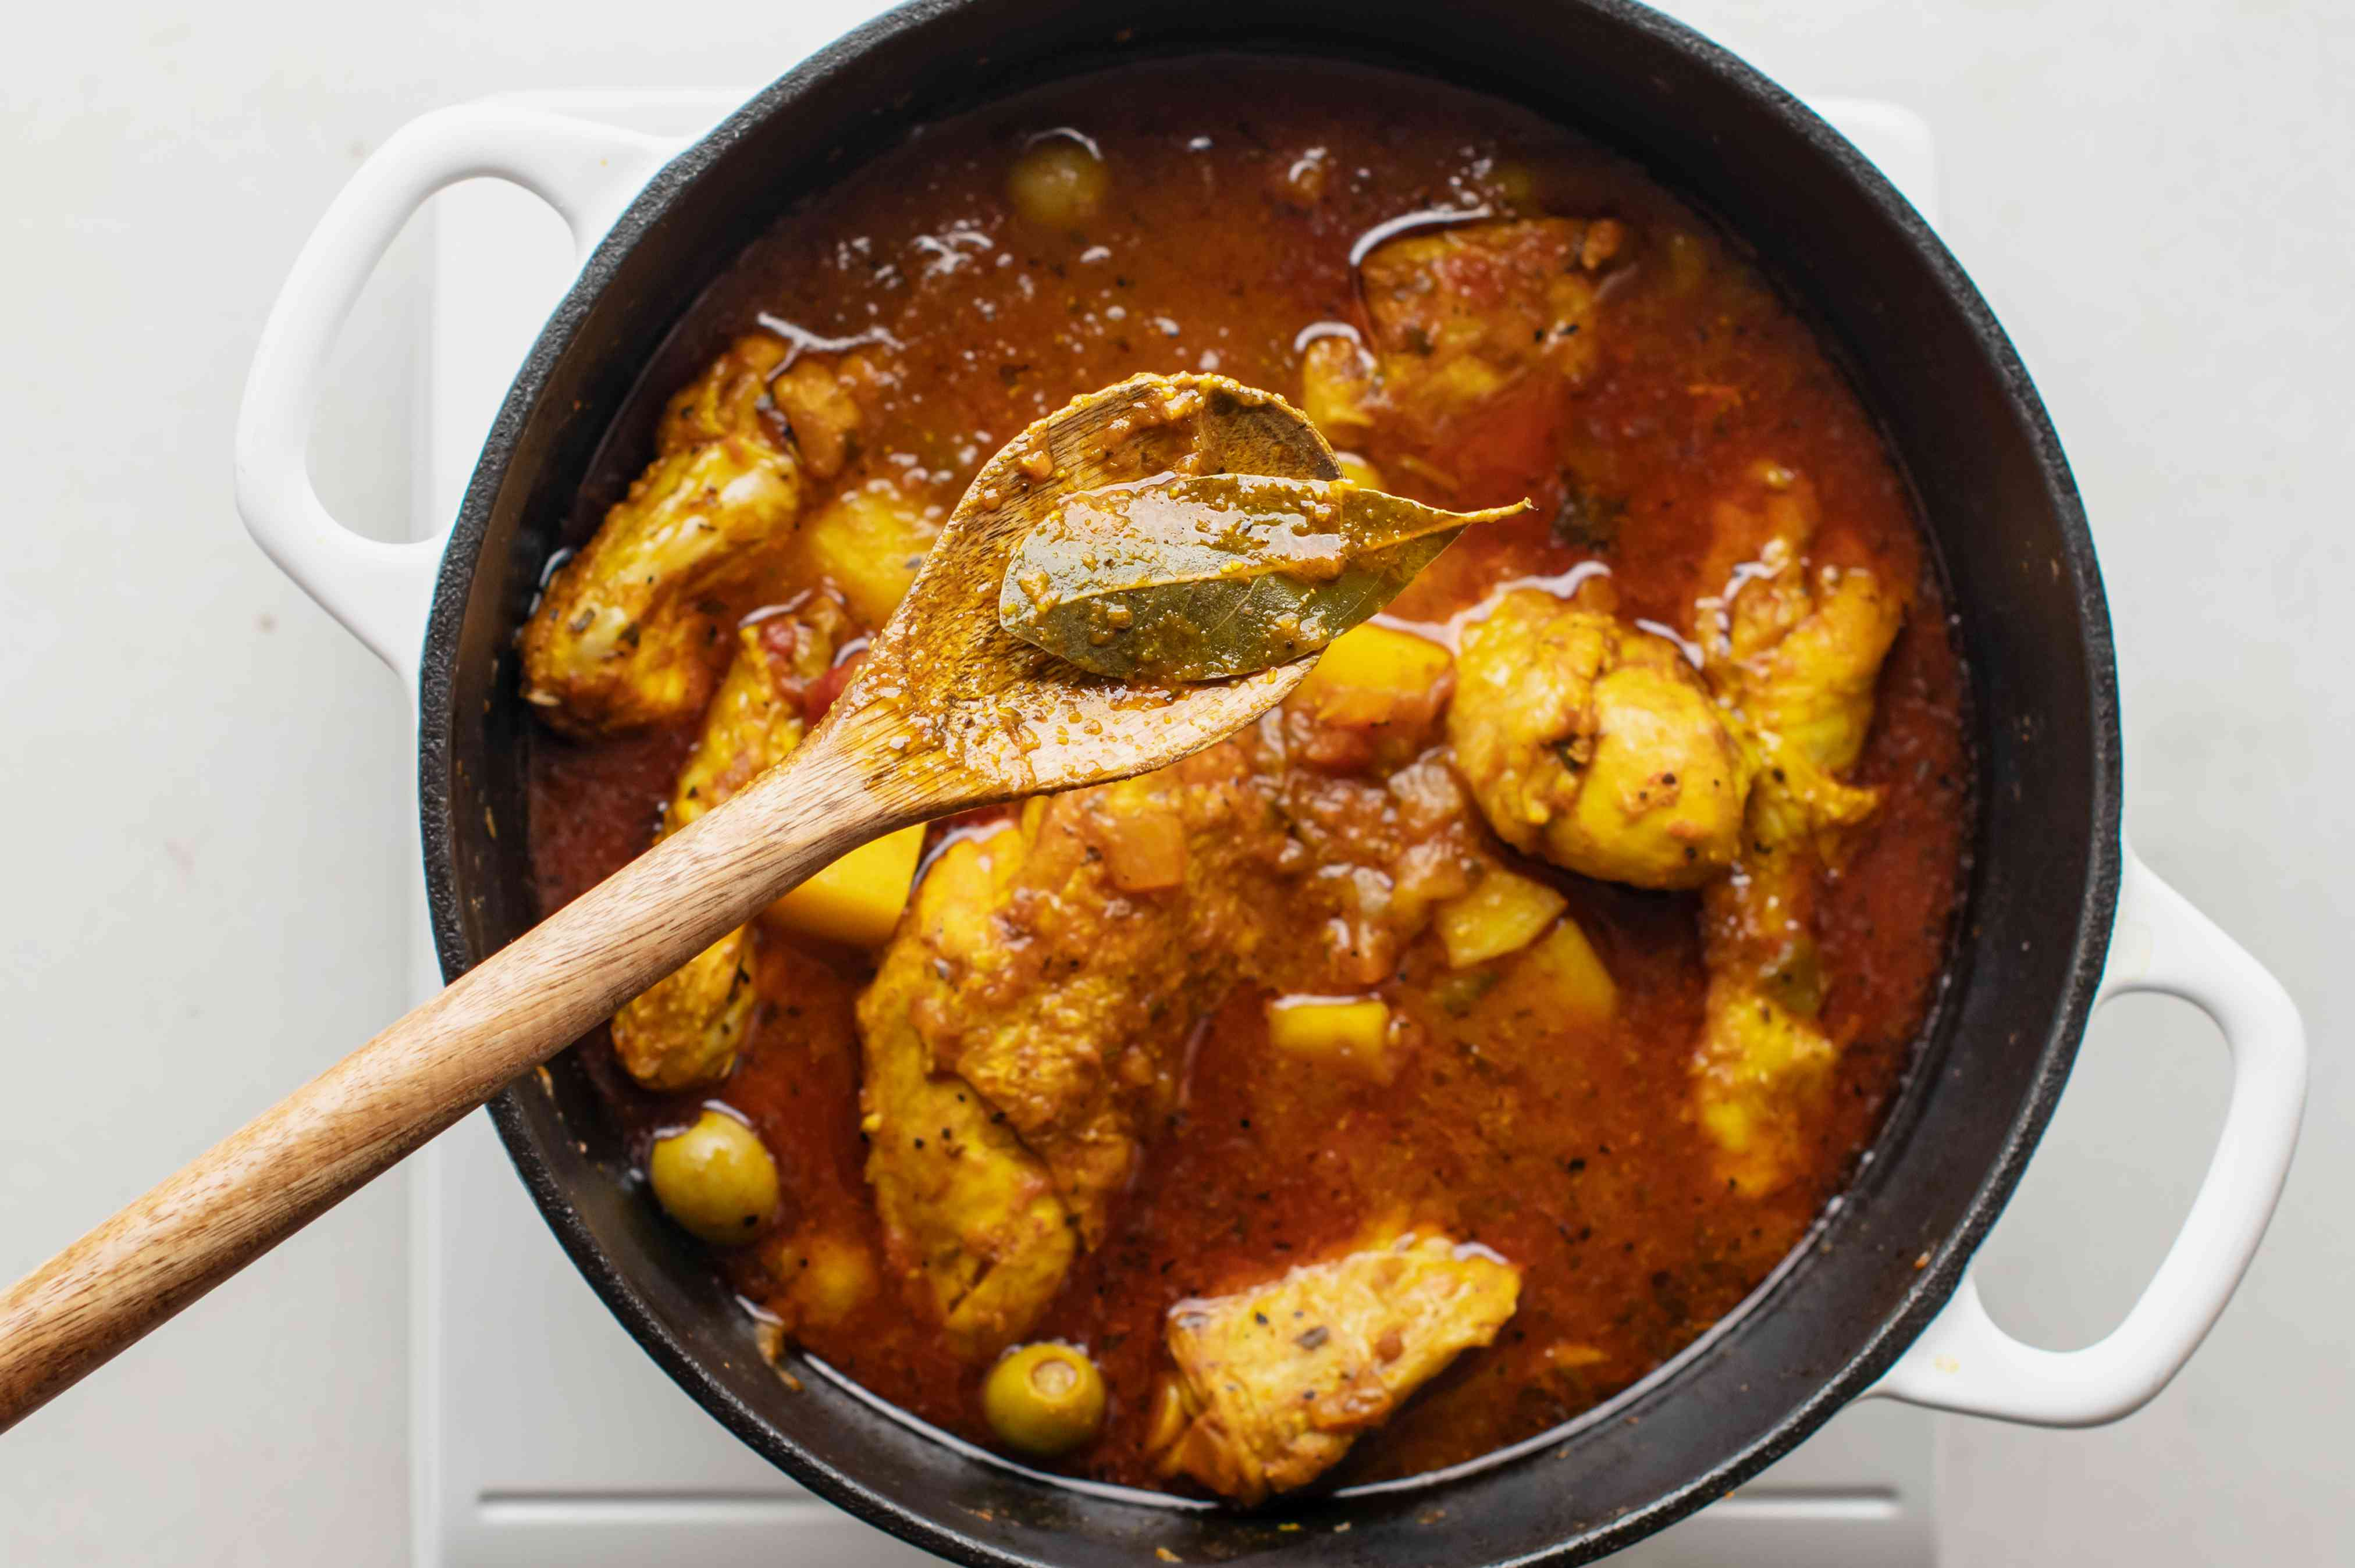 Remove bay leaf and culantro leaf from pollo guisado